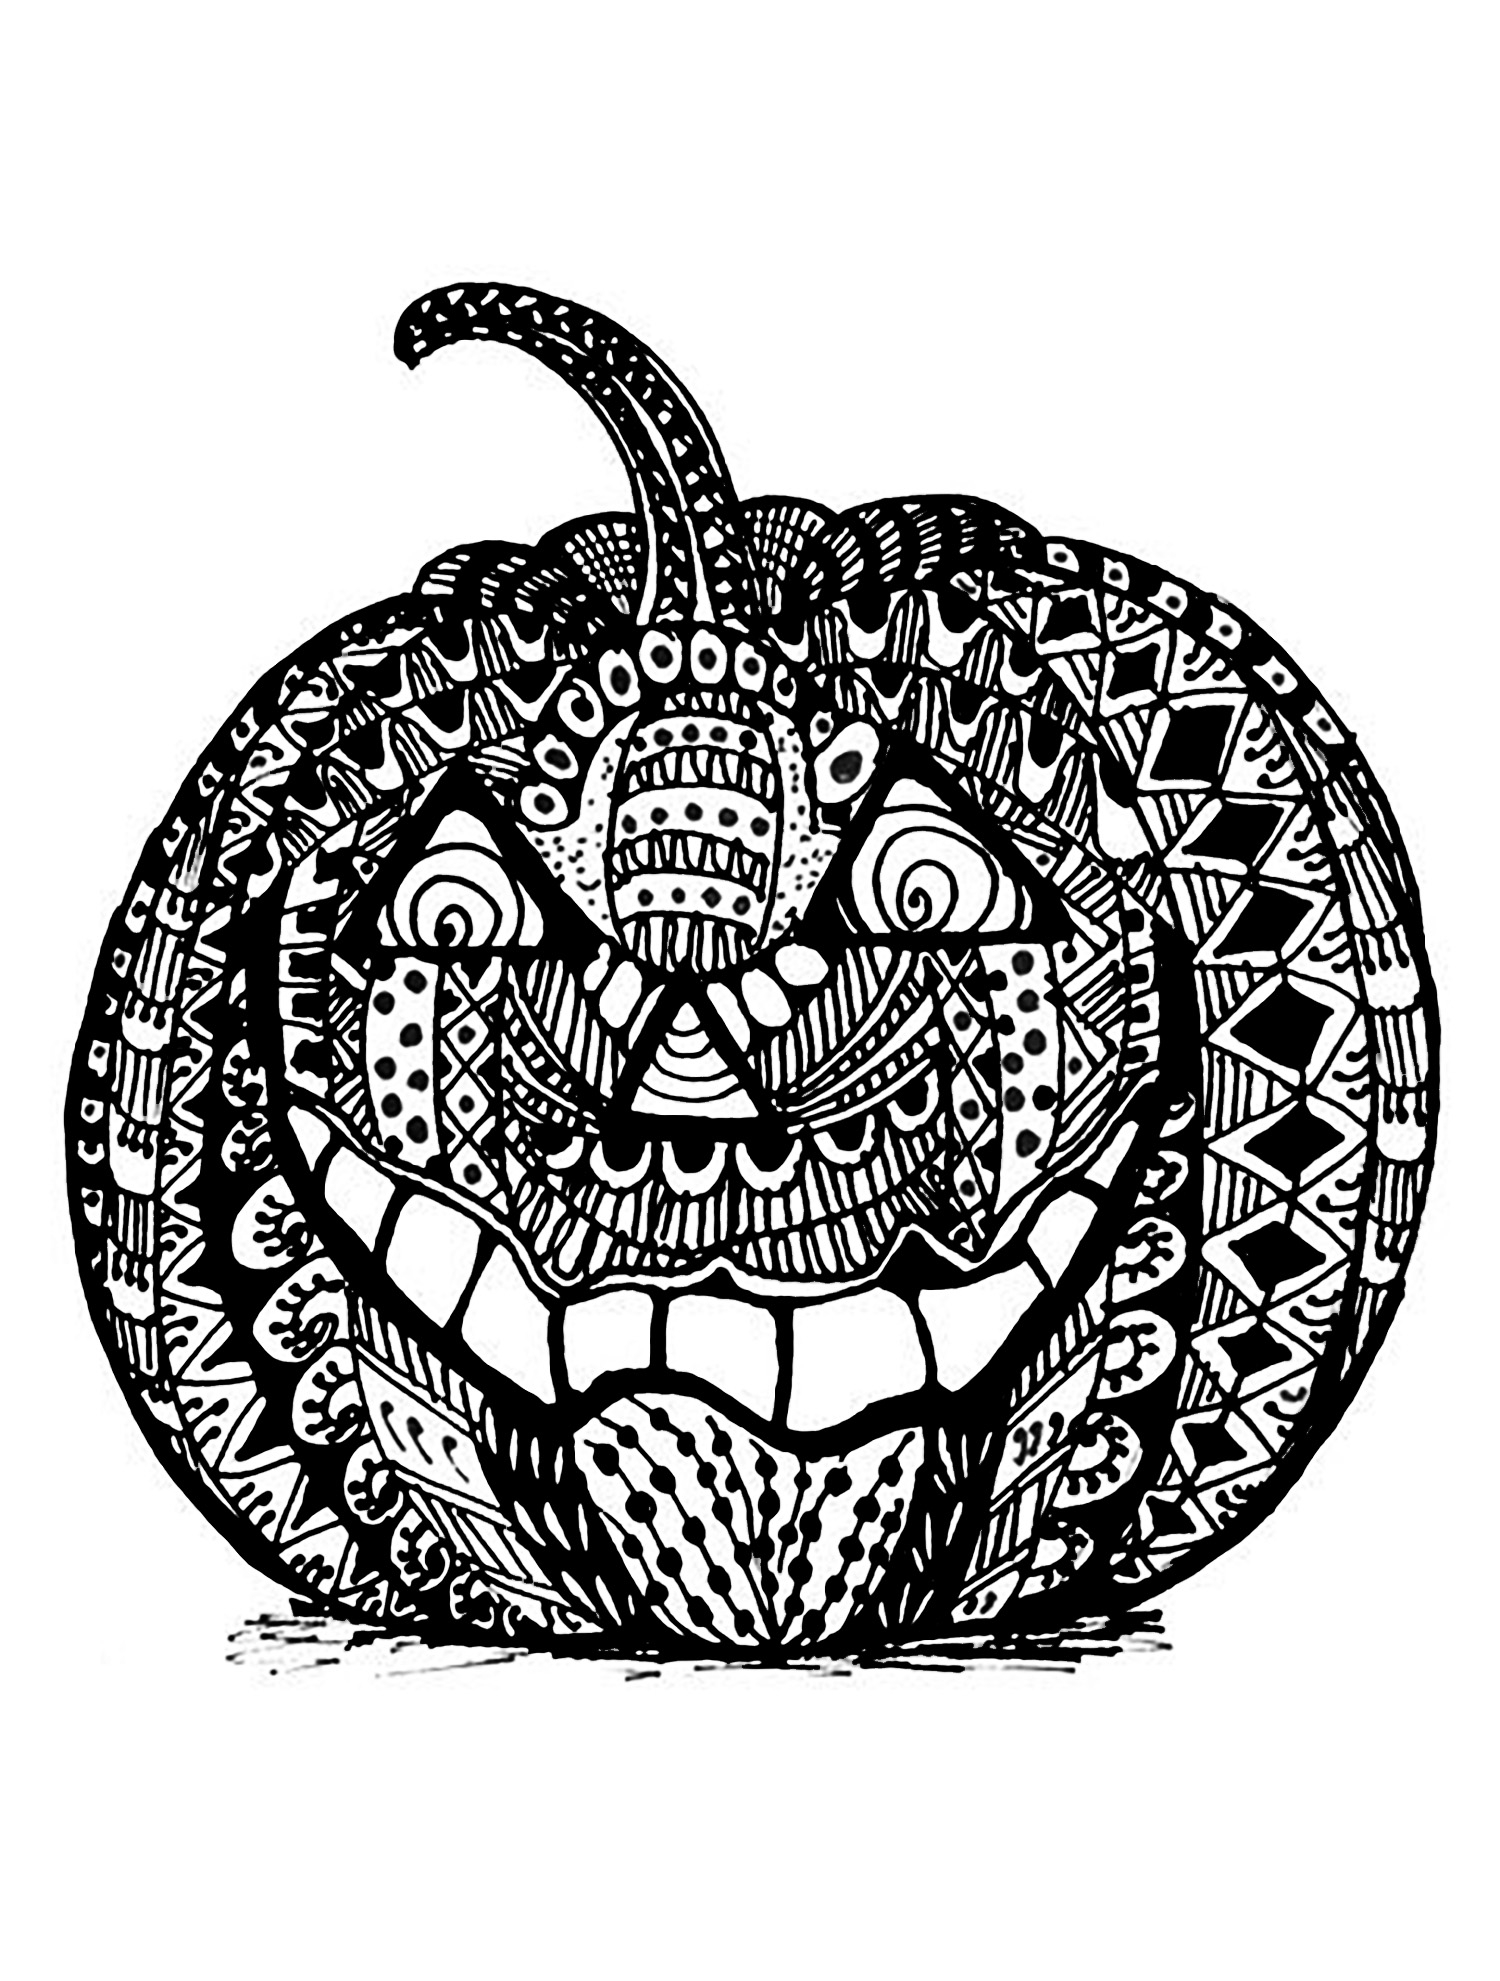 Halloween Pumpkin Coloring Pages Printables Coloring Books 49 Pumpkin Coloring Pages For Adults Image